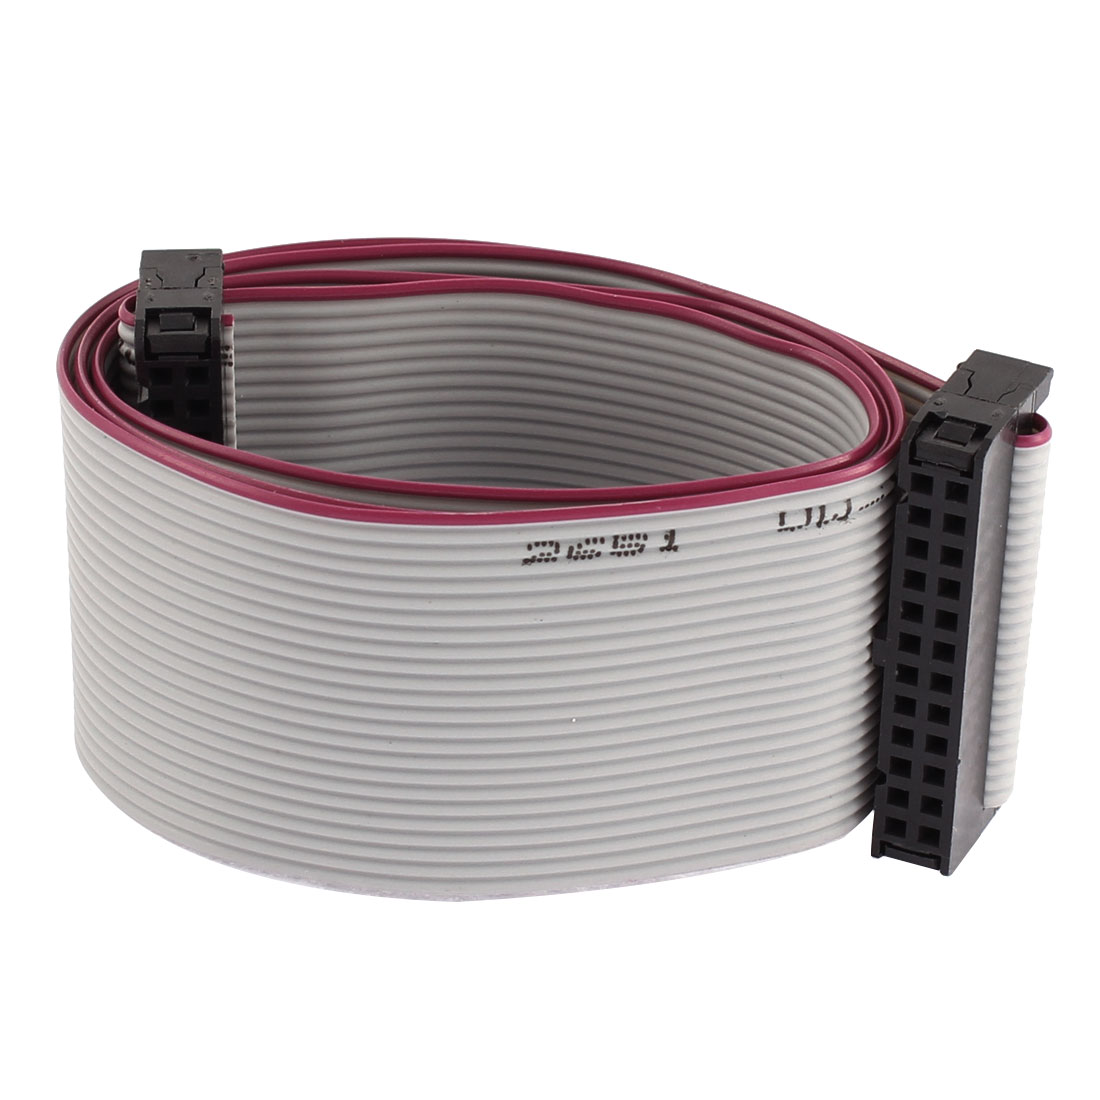 2.54mm Pitch 24 Pin 24 Wire IDC Flat Ribbon Cable 50cm Length